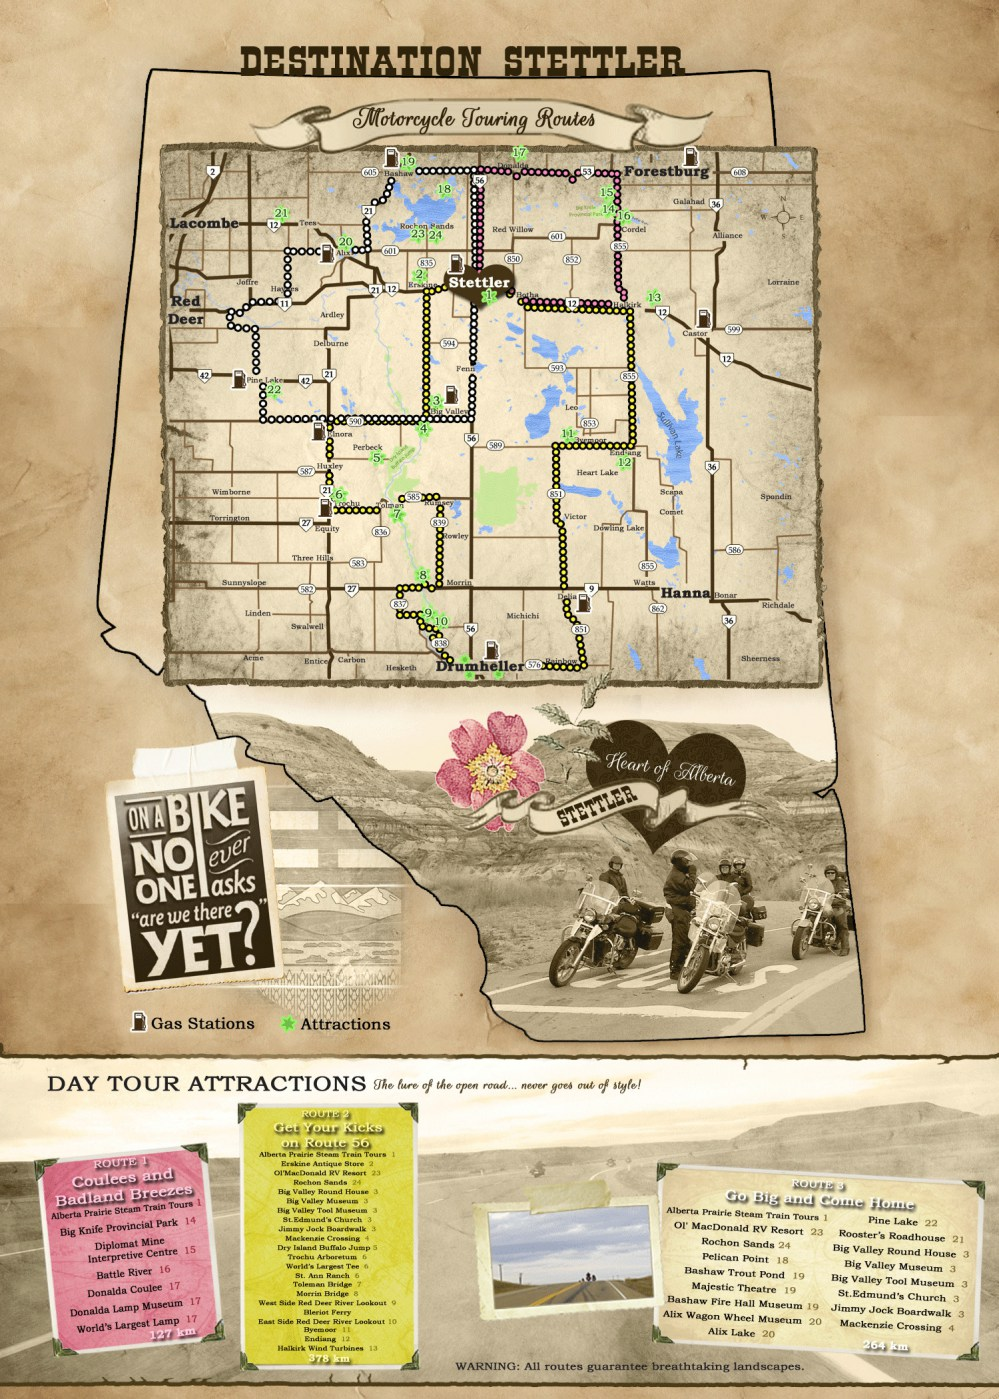 Motorcycle tour is Stettler route